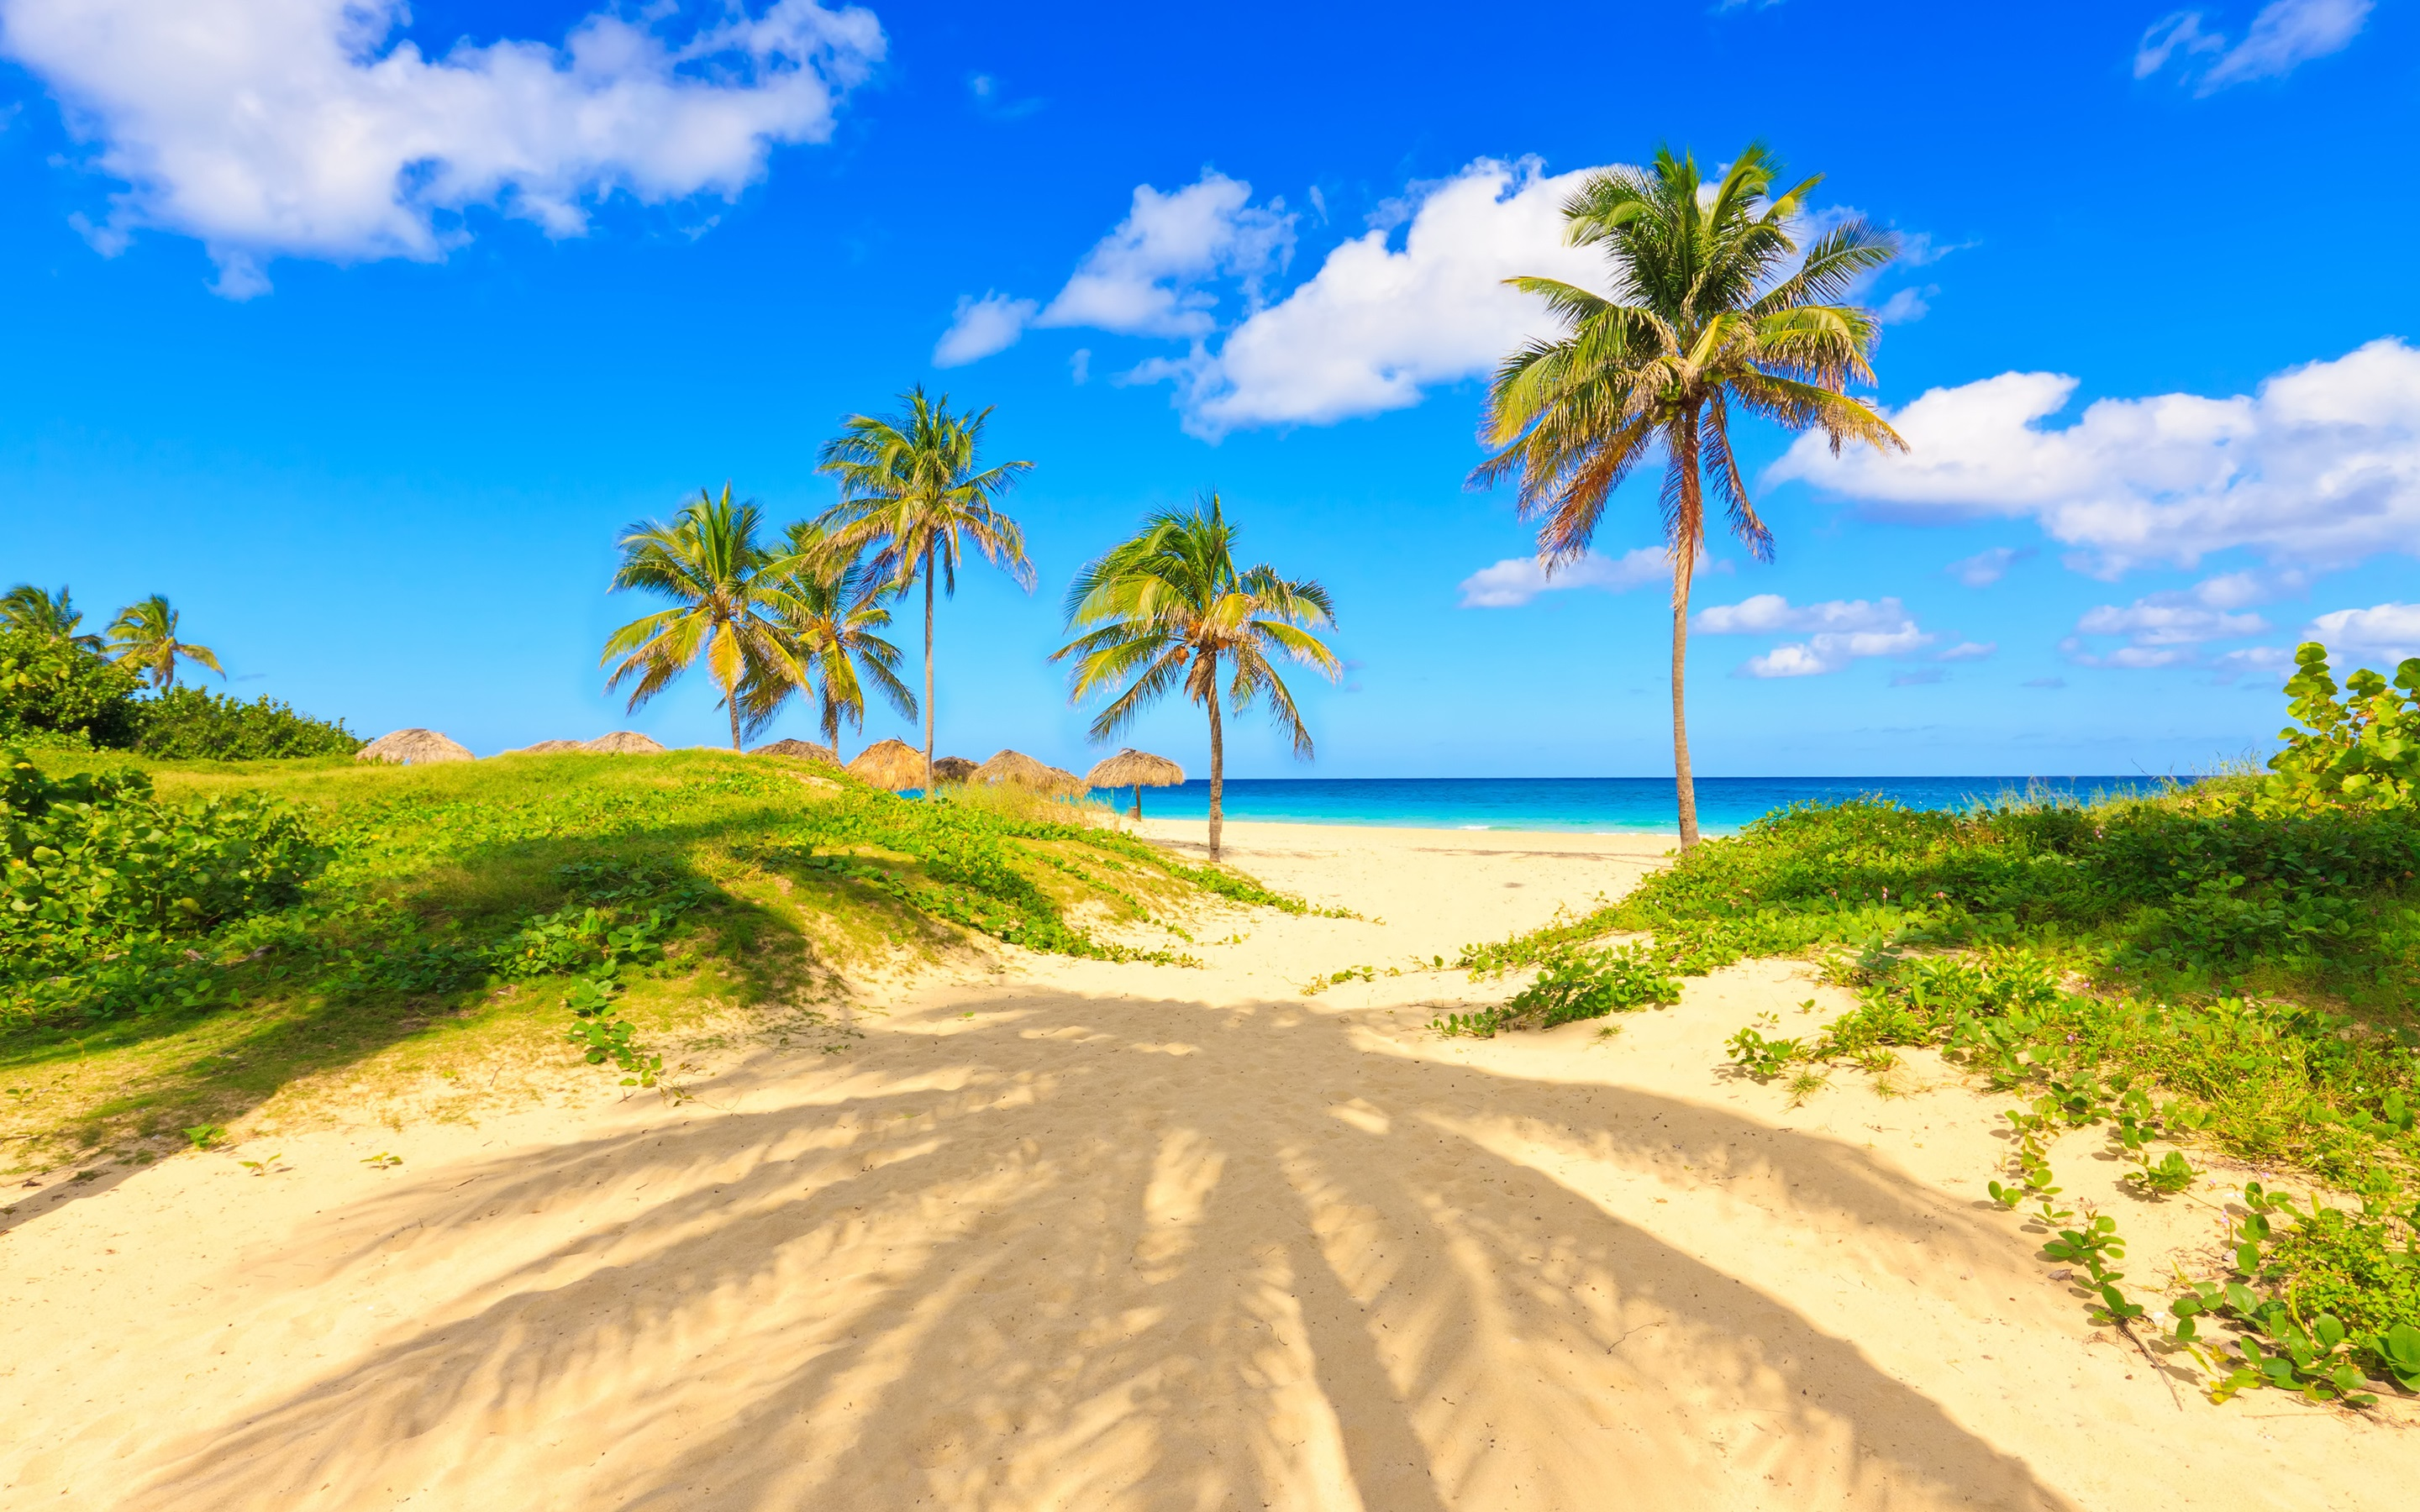 Wallpaper Summer Tropical Palm Trees Sands Sea Beach 2880x1800 Hd Picture Image